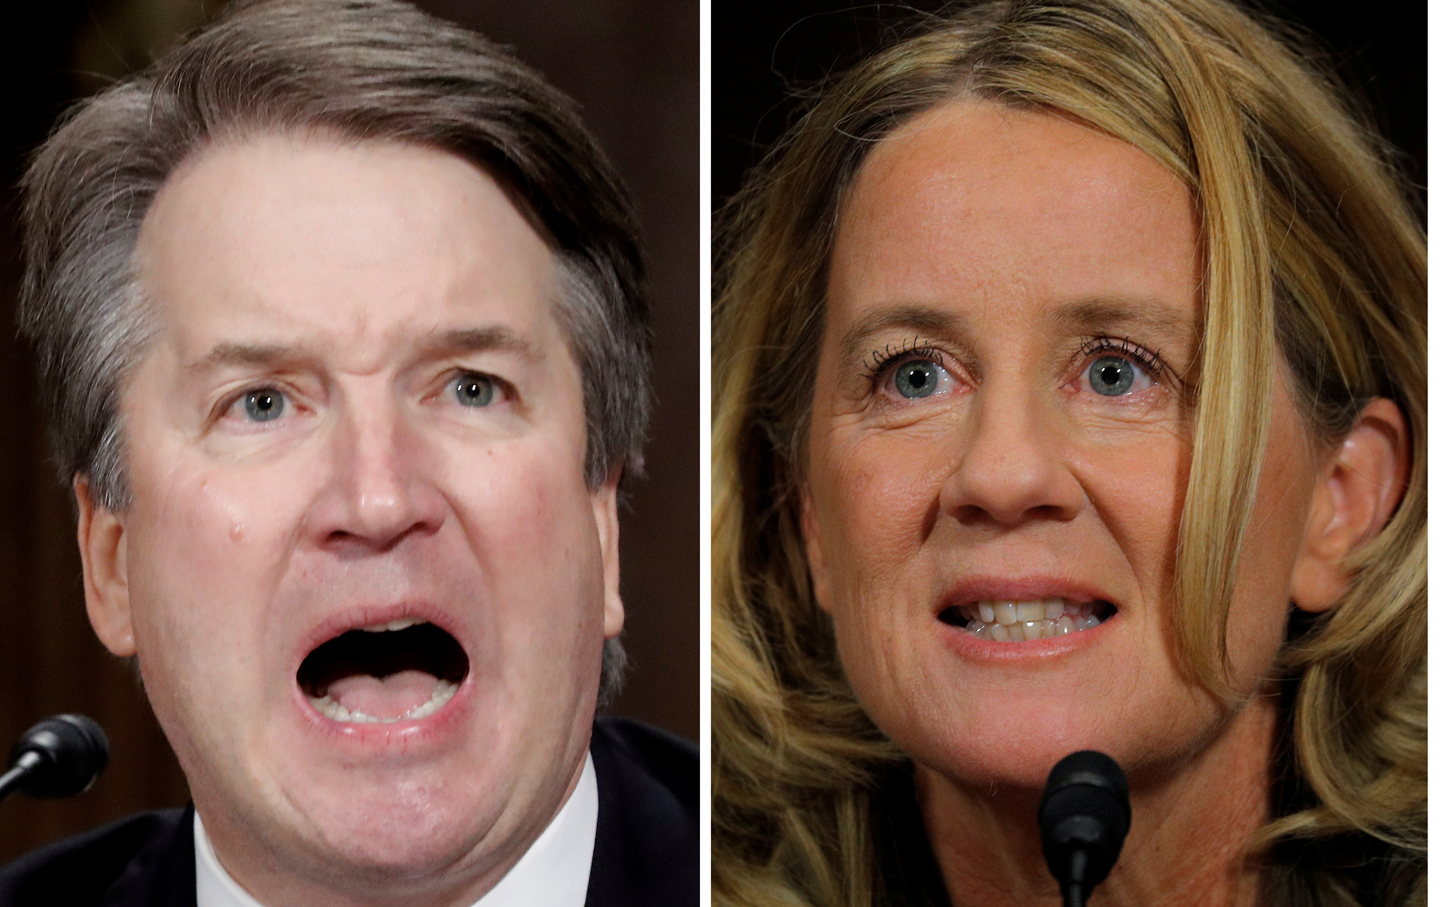 U.S. Supreme Court nominee Brett Kavanaugh and Professor Christine Blasey Ford during Senate Judiciary Committee hearing in Washington